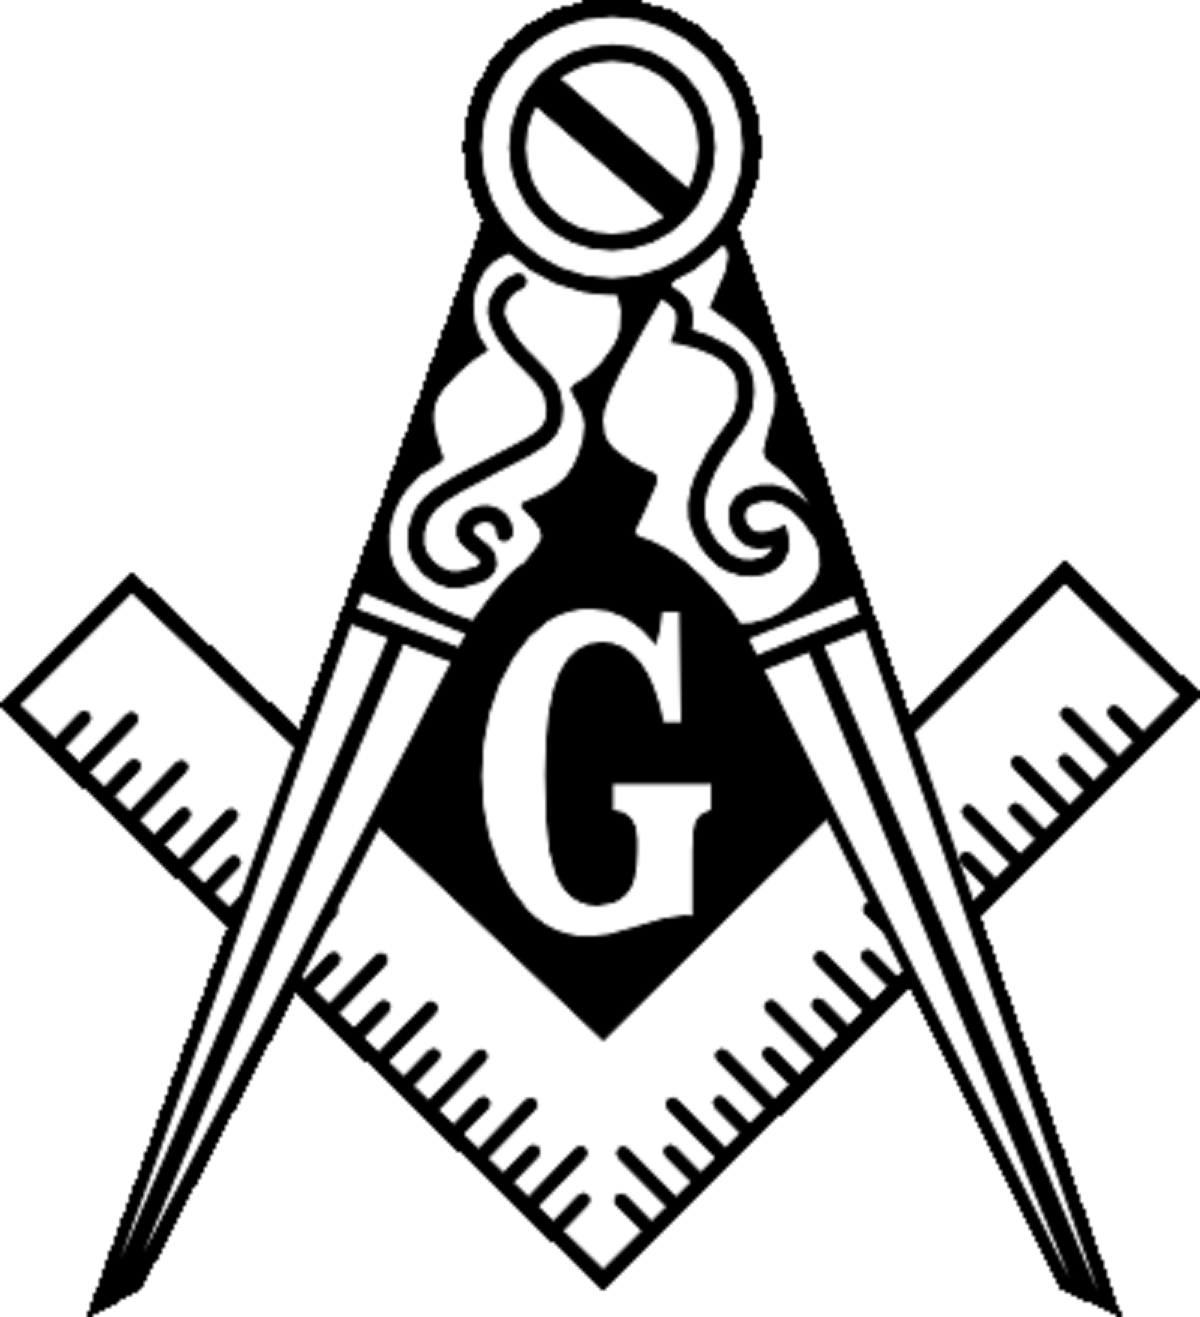 Masonic Square And Compass Logo Clipart Masonic symbols